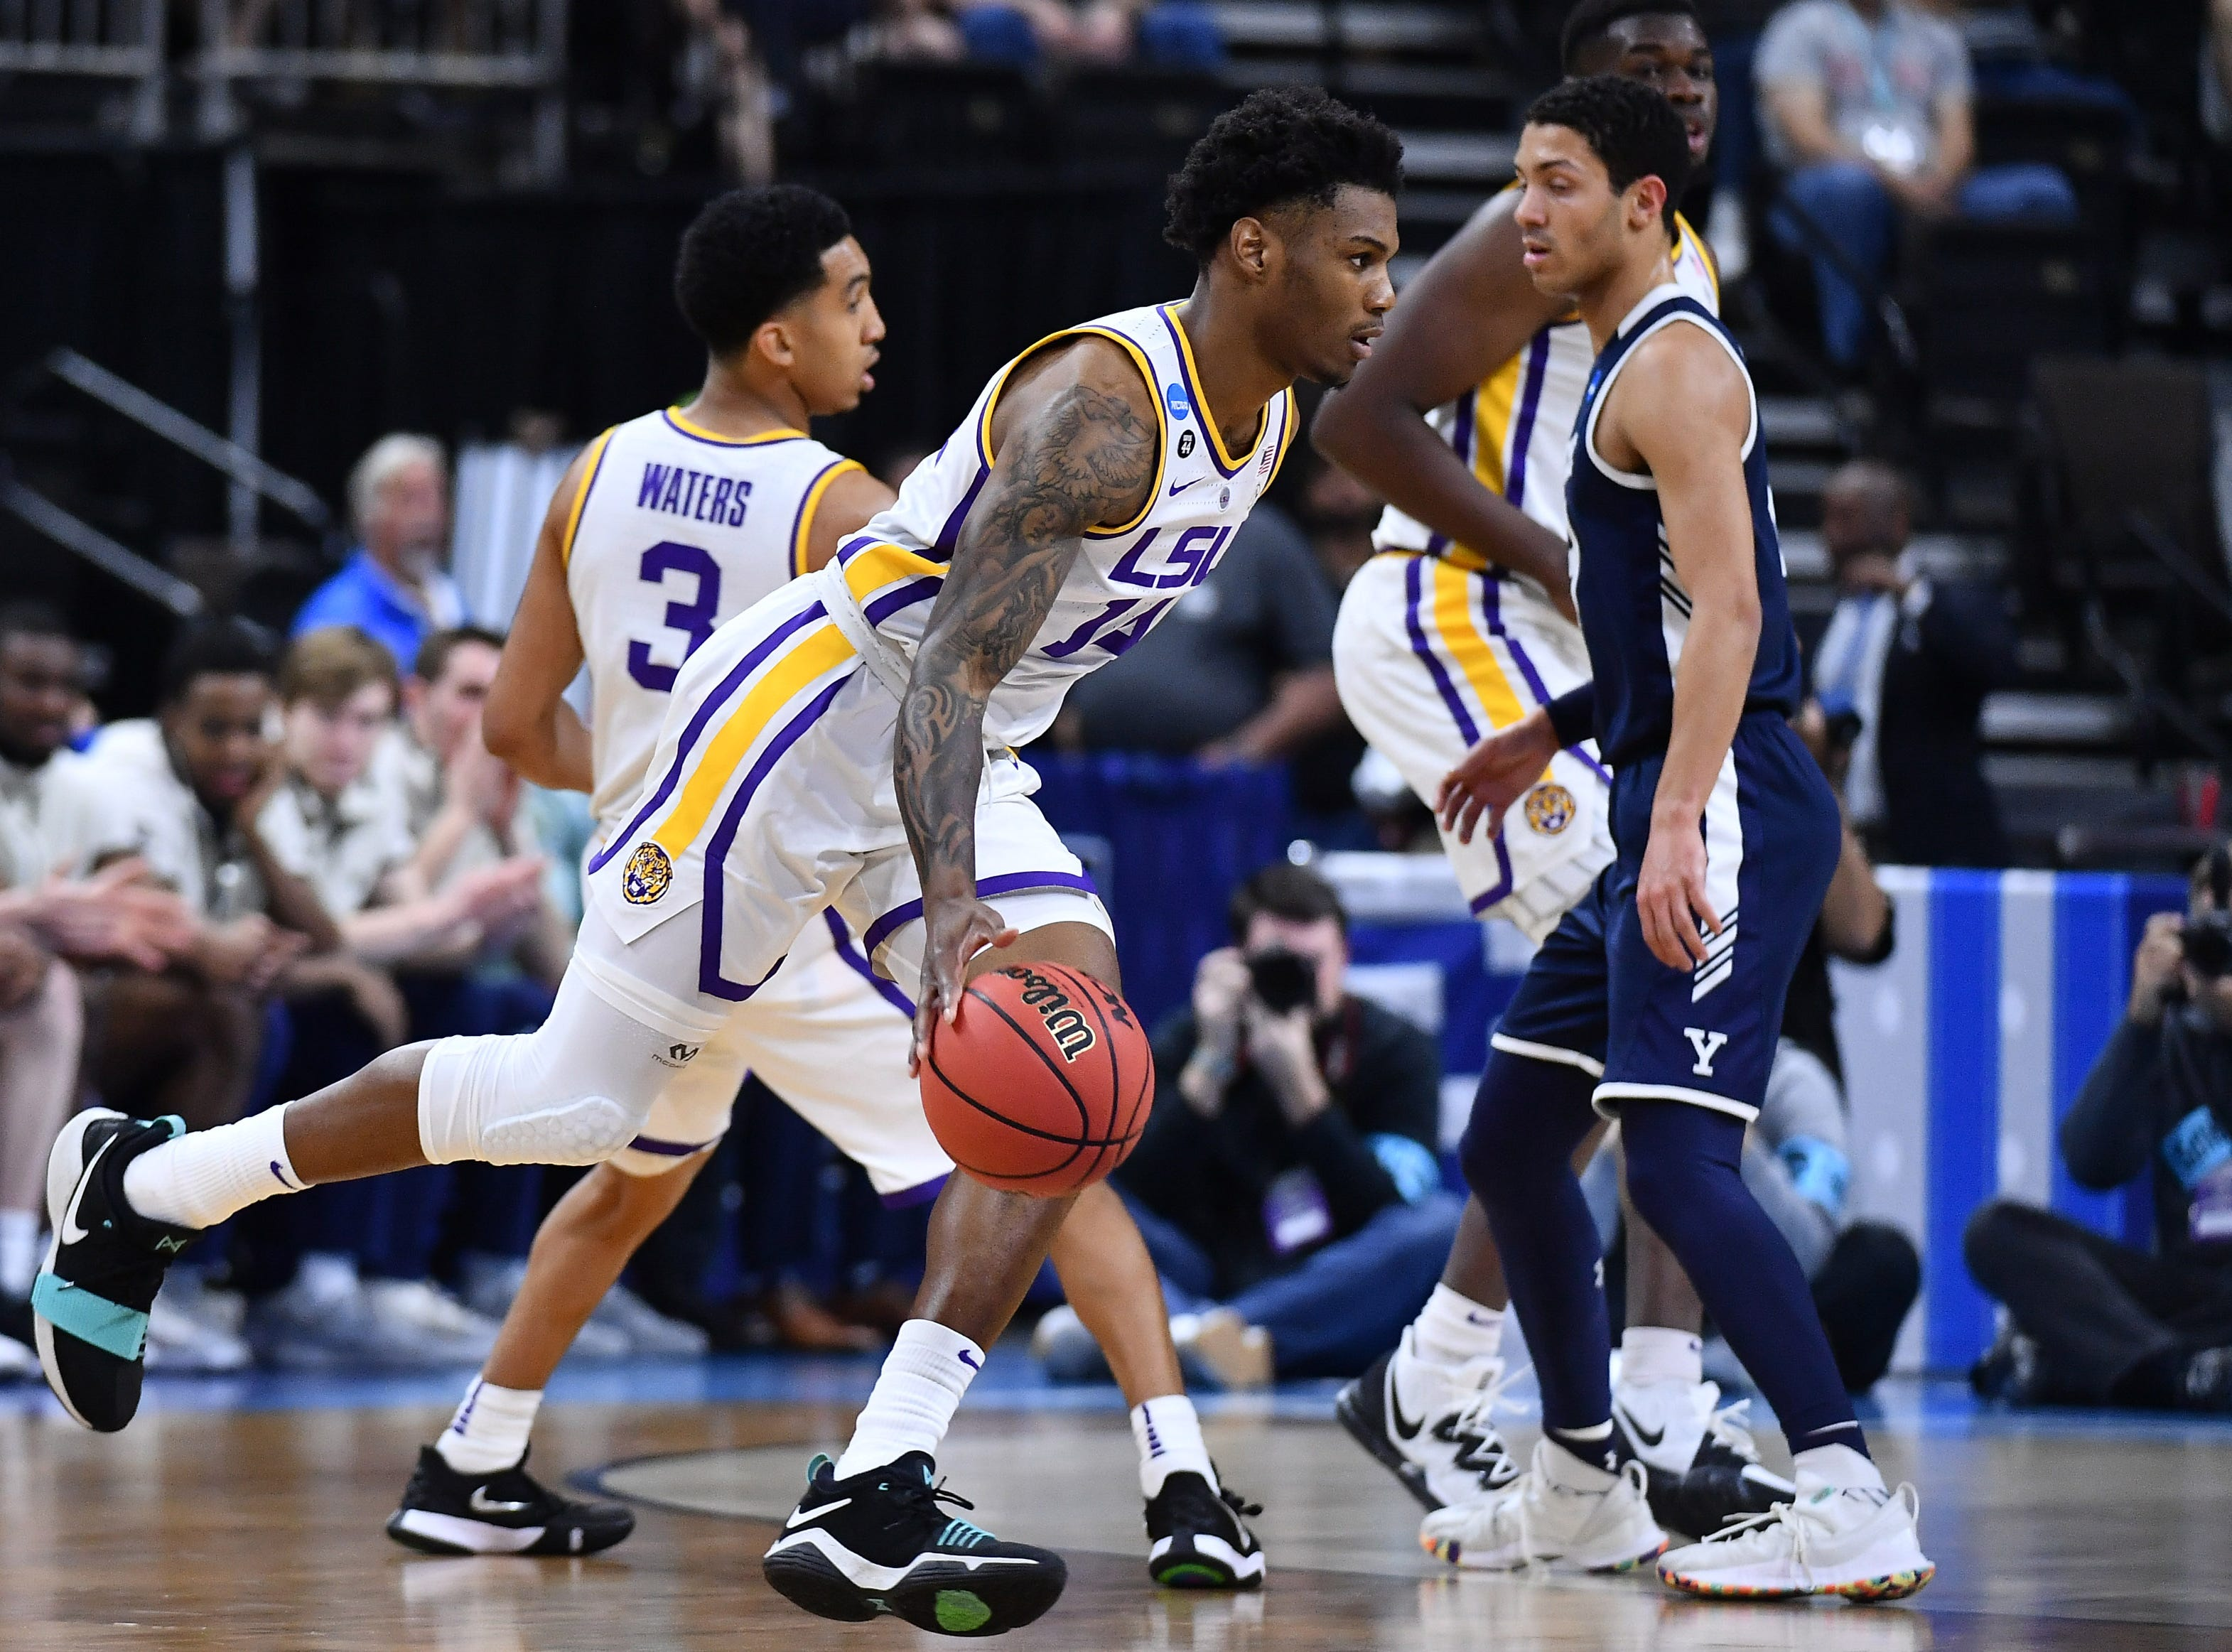 Mar 21, 2019; Jacksonville, FL, USA; LSU Tigers guard Marlon Taylor (14) dribbles the ball against the Yale Bulldogs during the first half in the first round of the 2019 NCAA Tournament at Jacksonville Veterans Memorial Arena. Mandatory Credit: John David Mercer-USA TODAY Sports